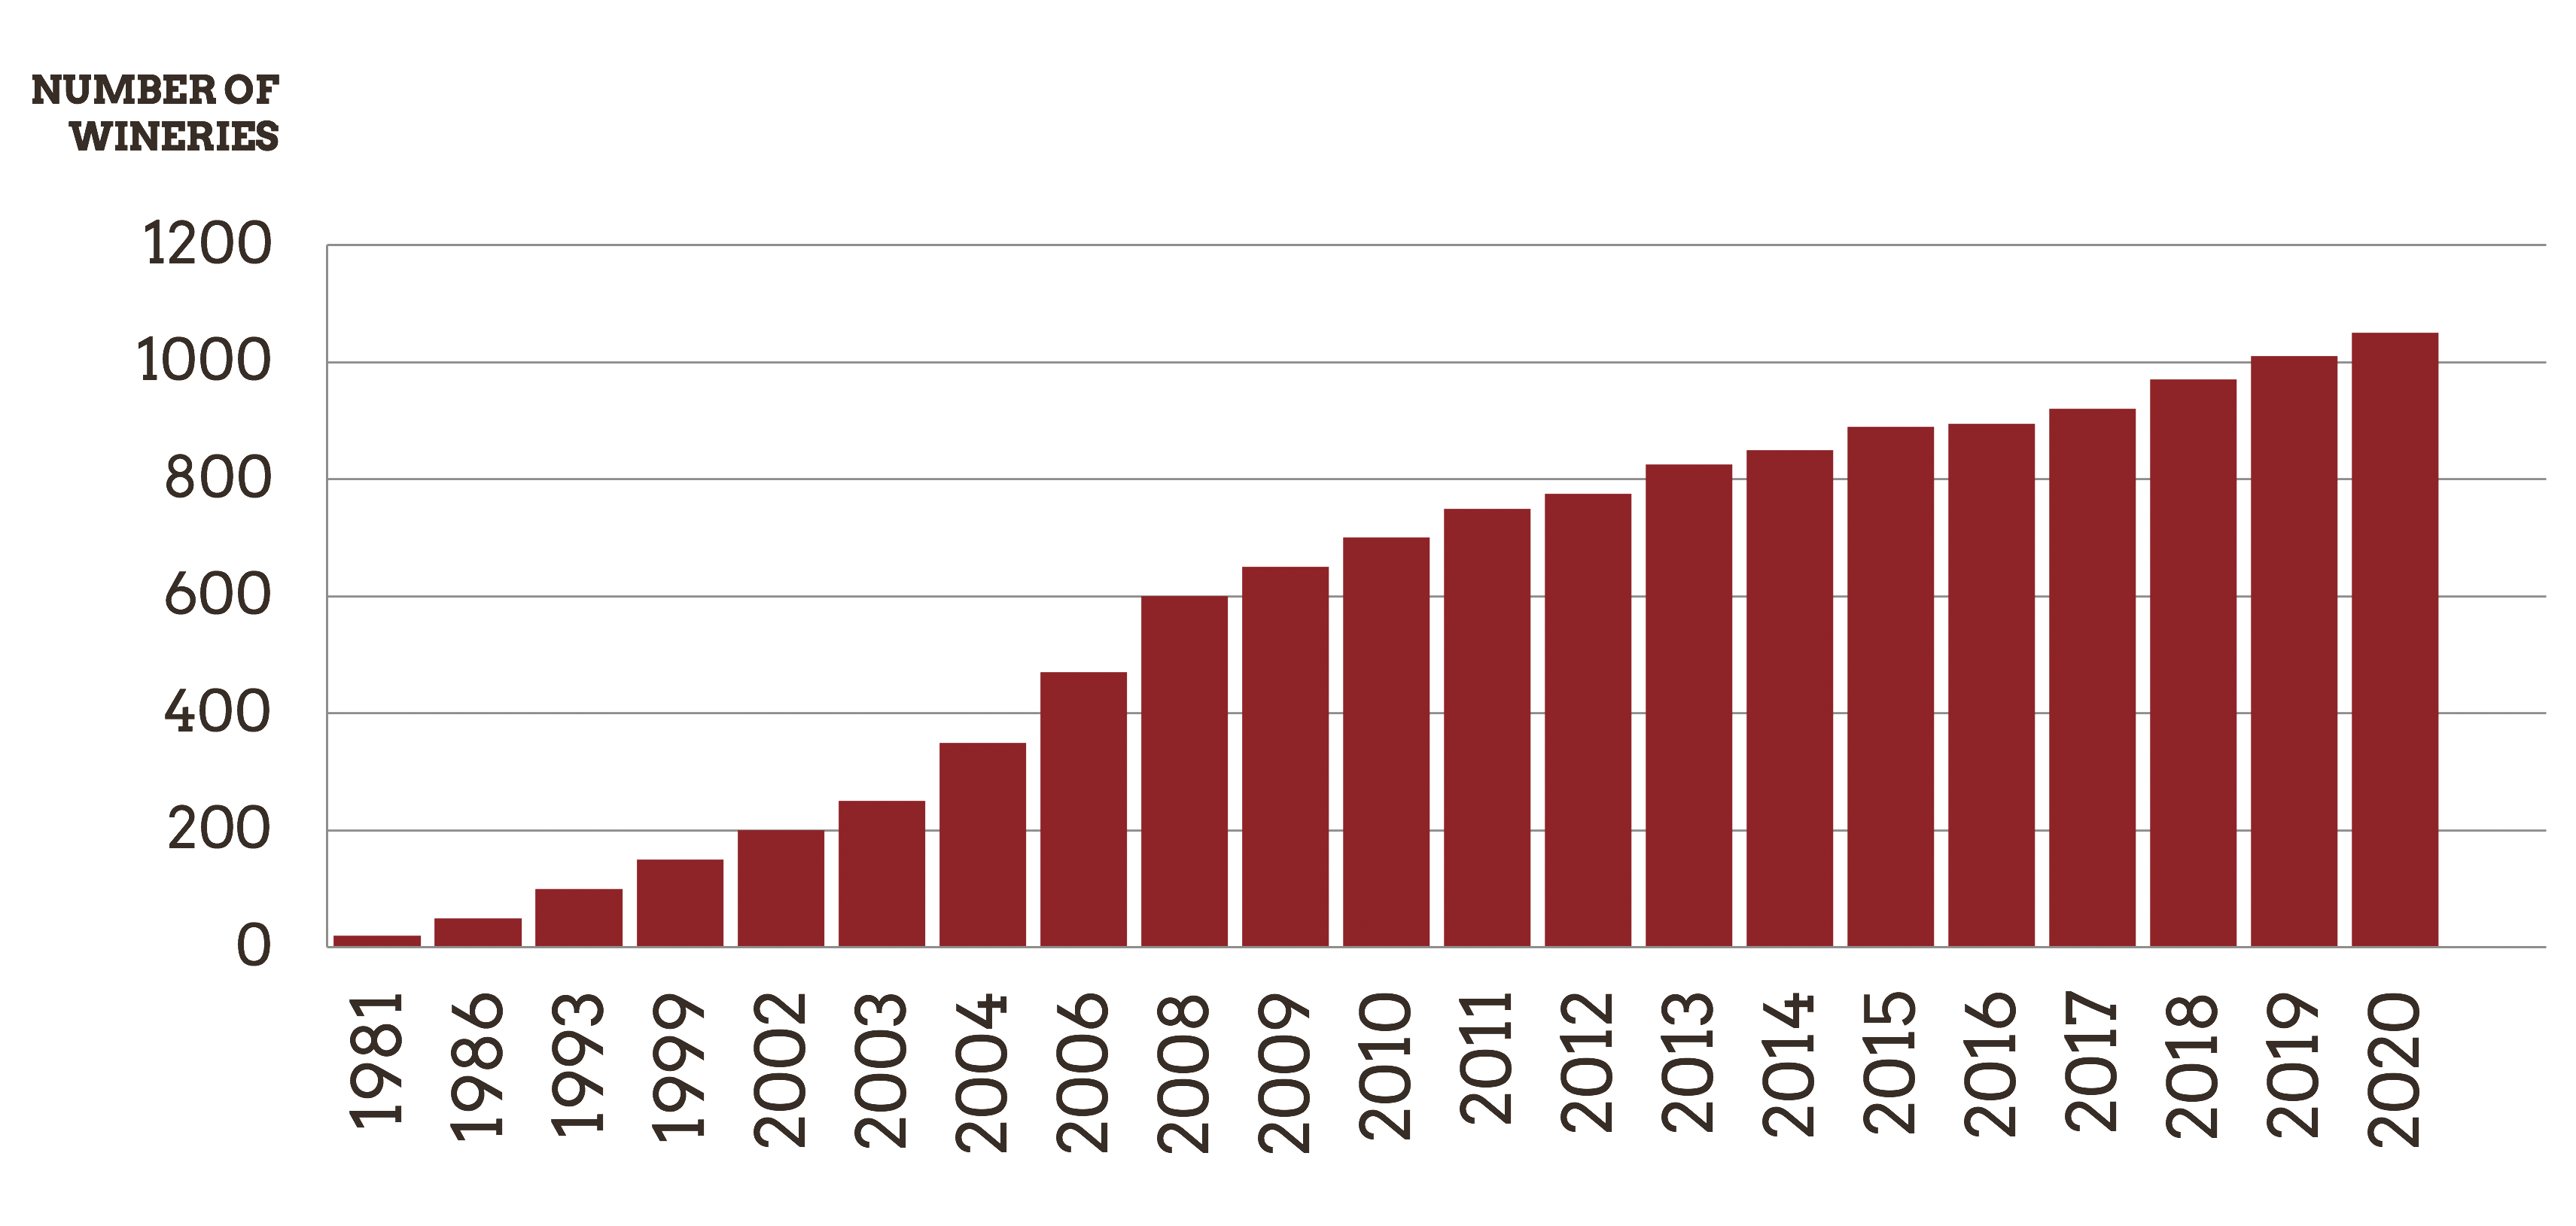 Bar graph illustrating the number of licensed wineries in Washington by year, 1981-2020.